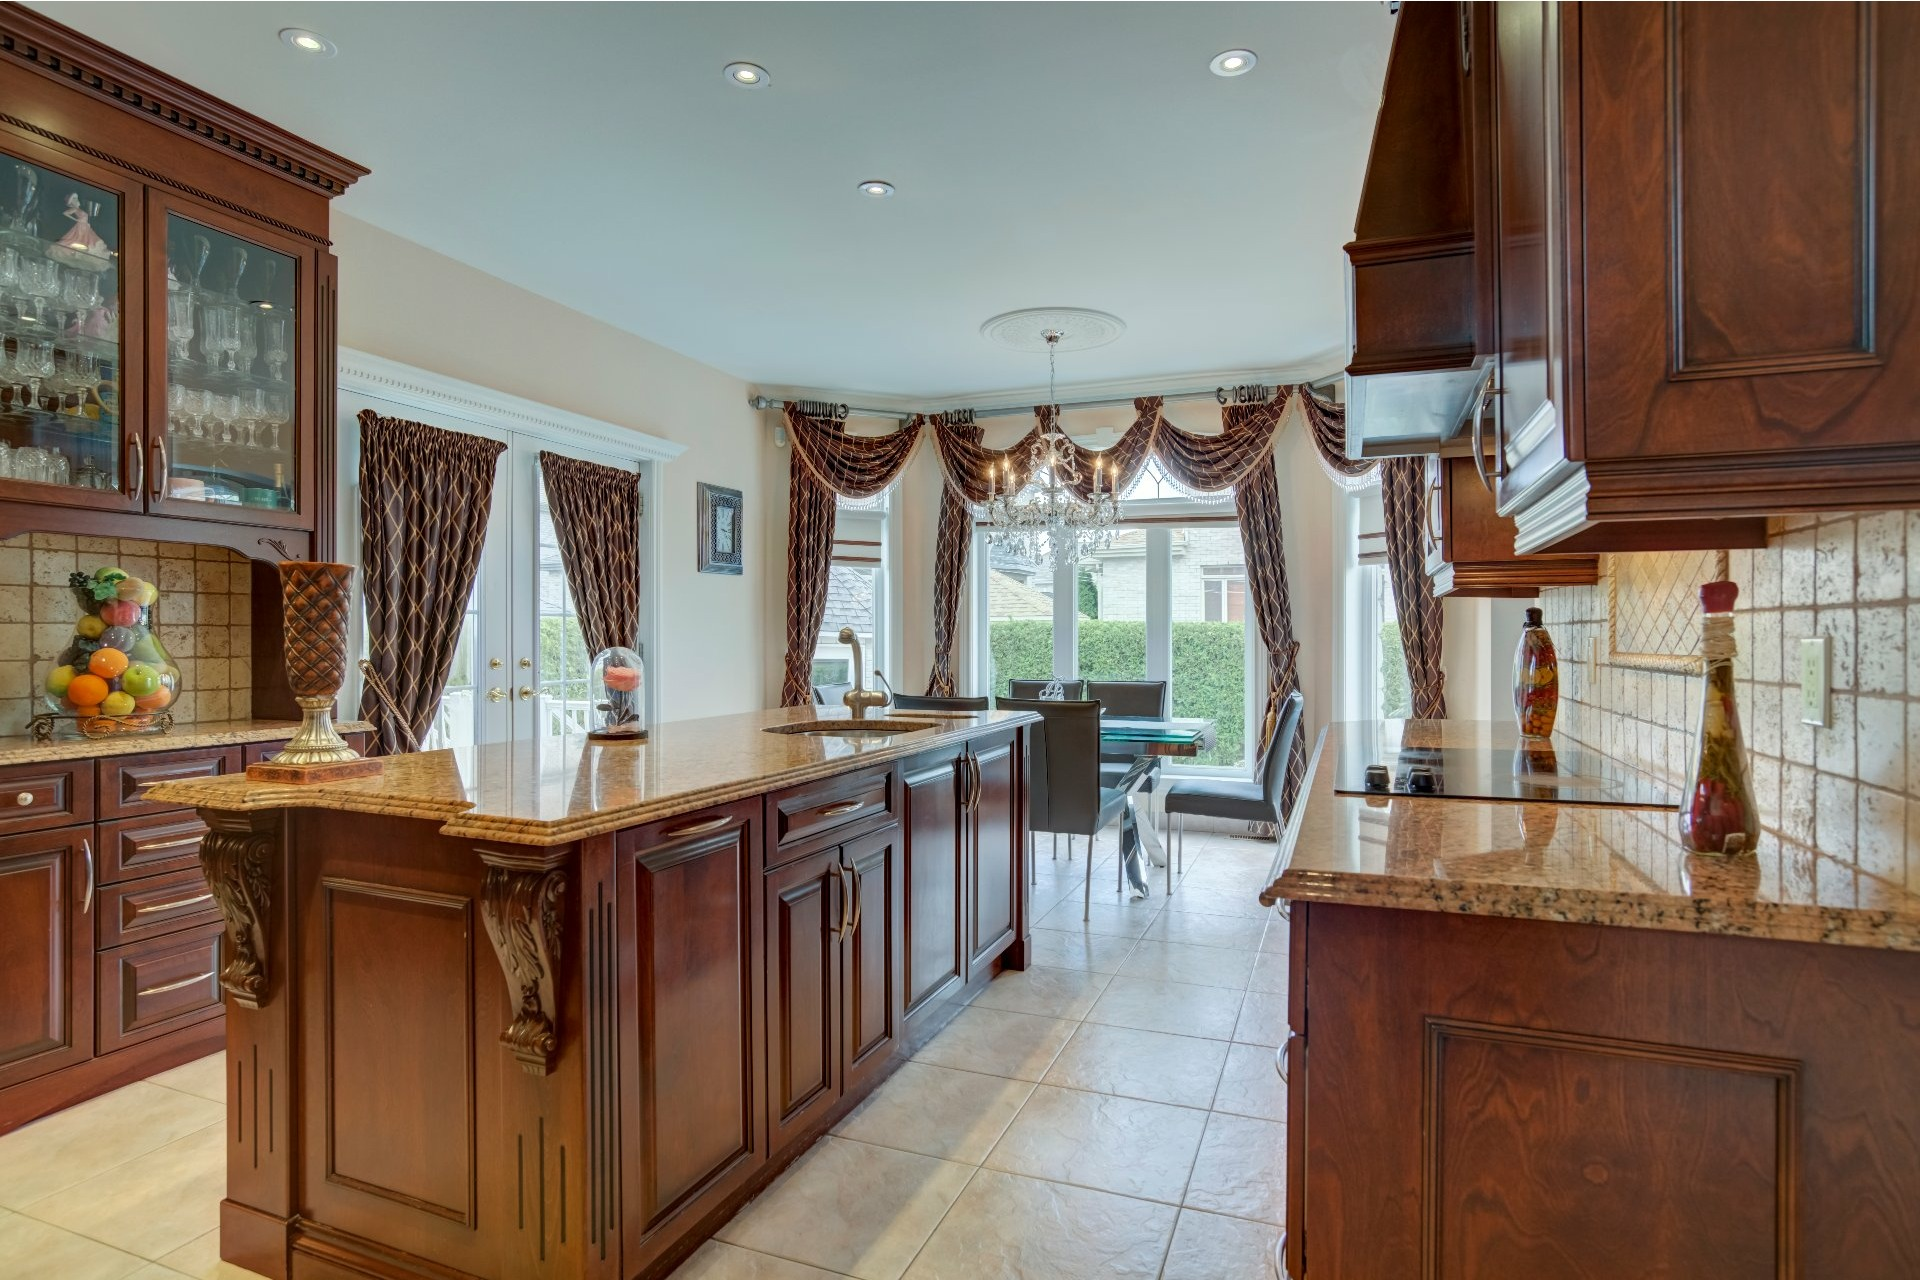 image 5 - House For sale Duvernay Laval  - 13 rooms